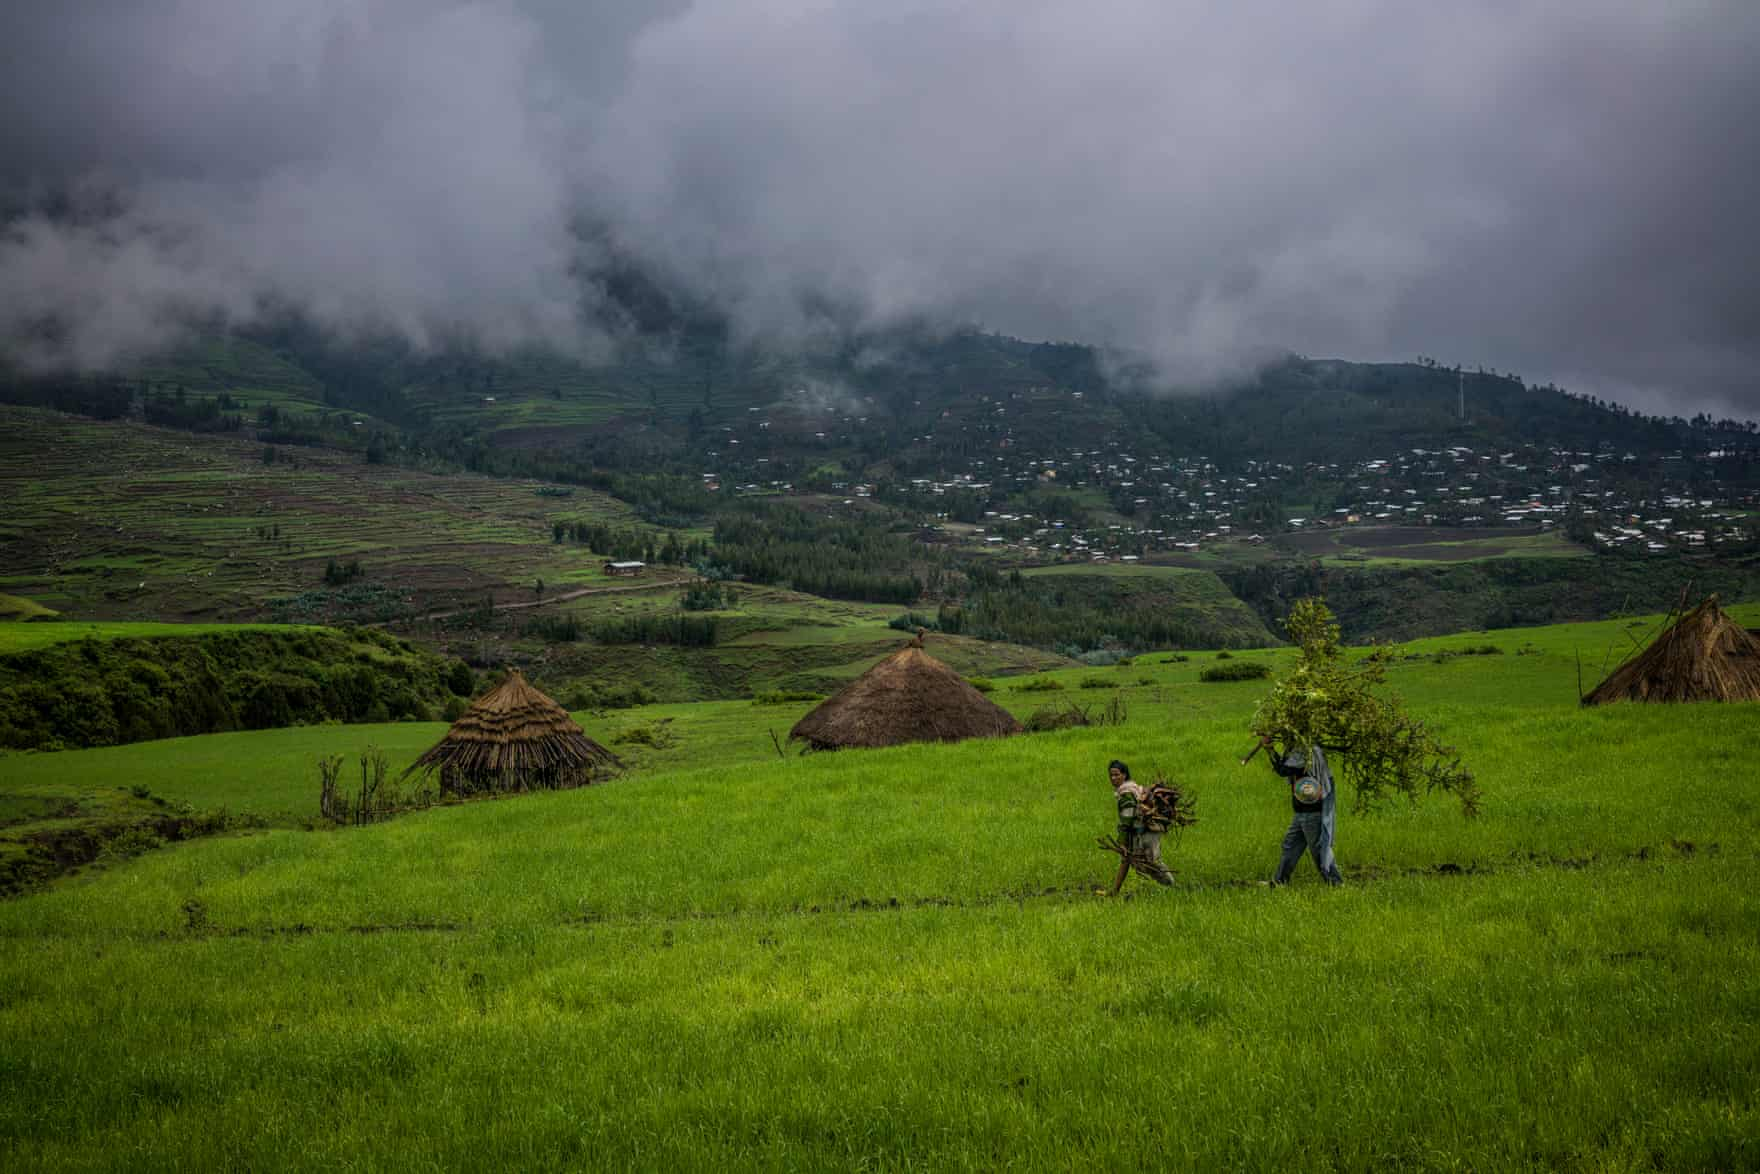 Despite their lush appearance at the peak of the unusually wet season, the northern highlands are very susceptible to dramatic swings in levels of rainfall. Coming after one of the worst droughts in decades, the rains could threaten staple cereal and vegetable crops via The Guardian